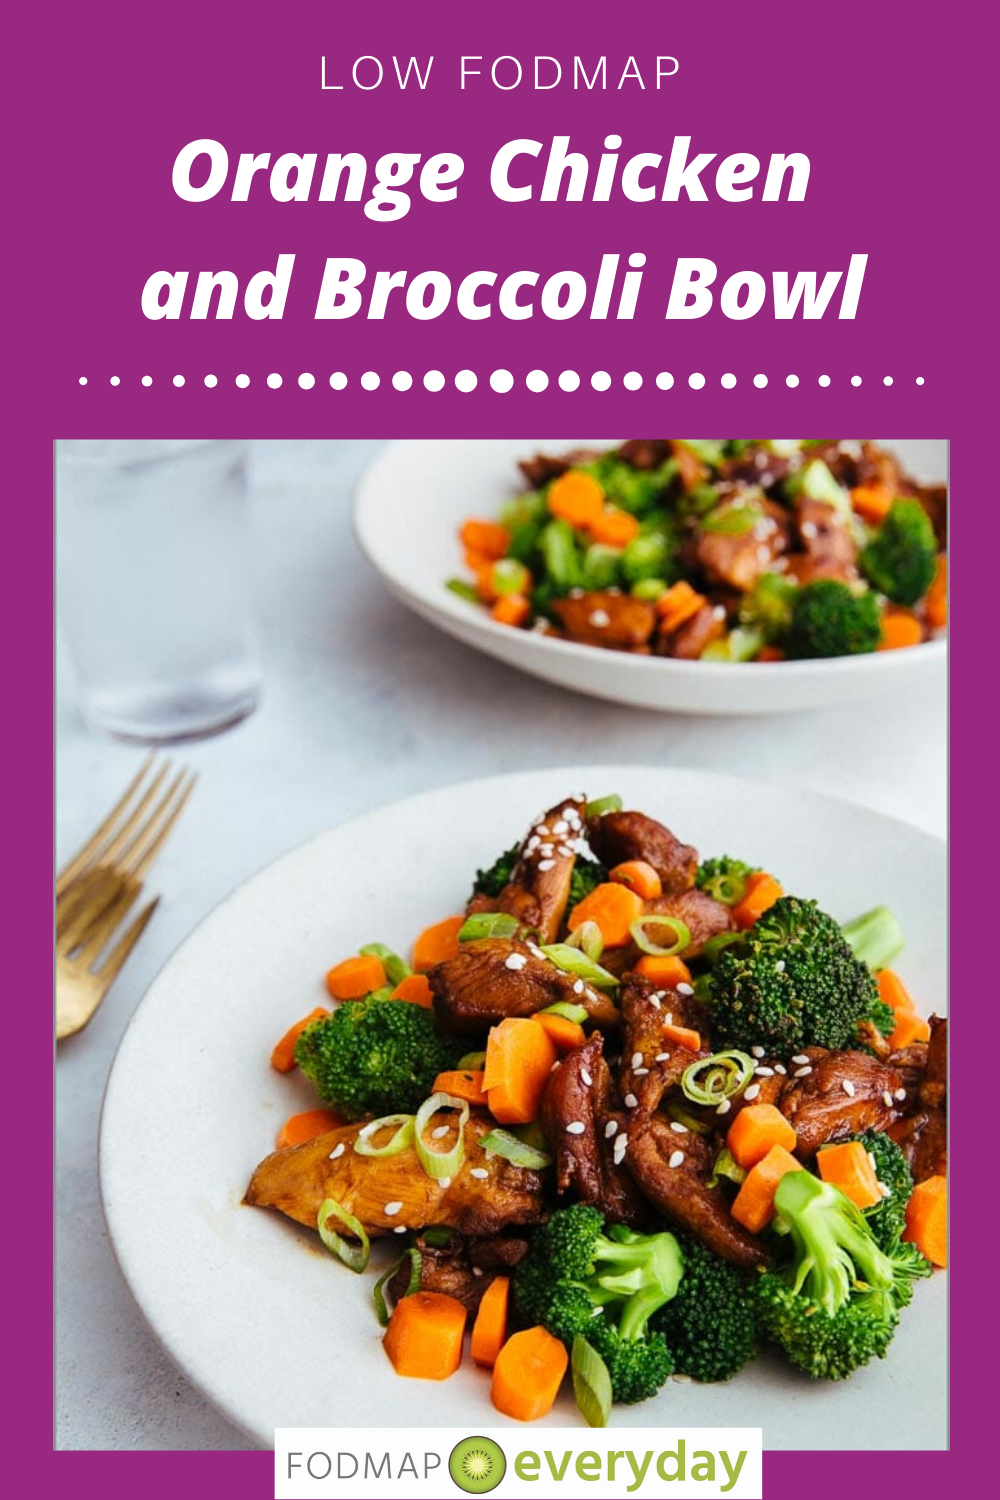 Low Fodmap Orange Chicken And Broccoli Bowl Fodmap Everyday Recipe In 2020 Low Fodmap Diet Recipes Fodmap Recipes Low Fodmap Chicken